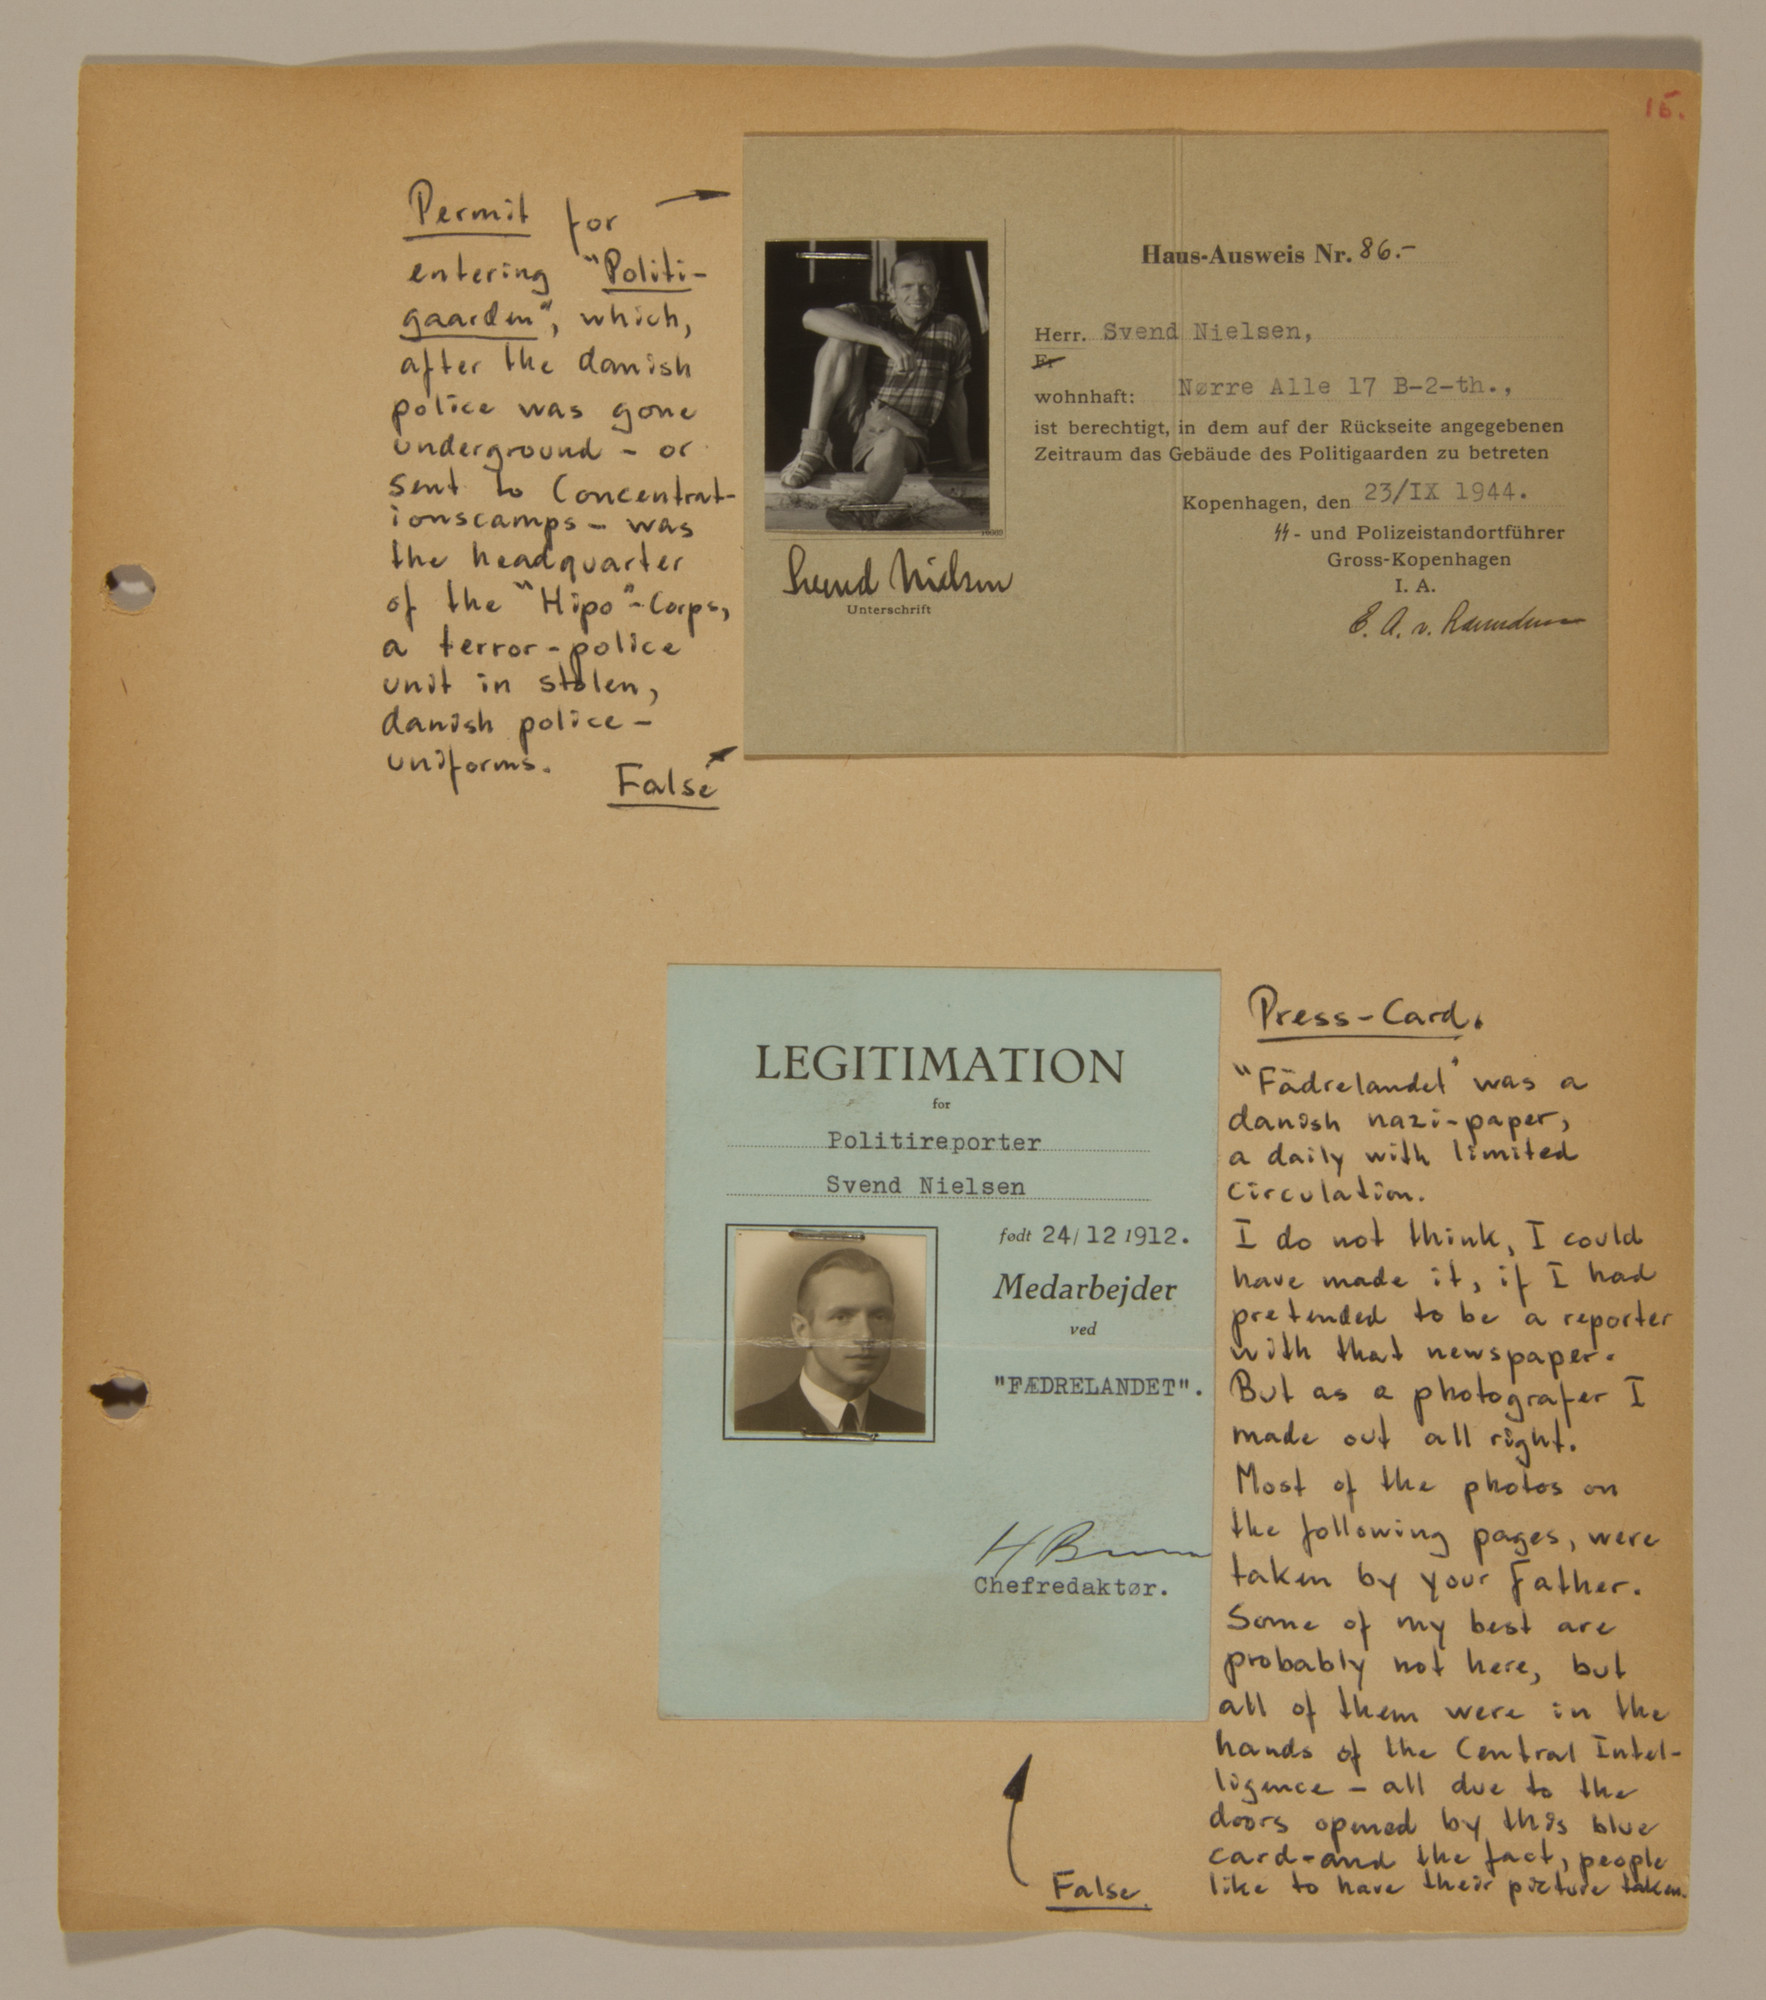 Page from volume three of a set of scrapbooks compiled by Bjorn Sibbern, a Danish policeman and resistance member, documenting the German occupation of Denmark.  This page contains Bjorn Sibbern's (aka Svend Nieslsen's) false press card and permit to enter the headquarters of the secret police.